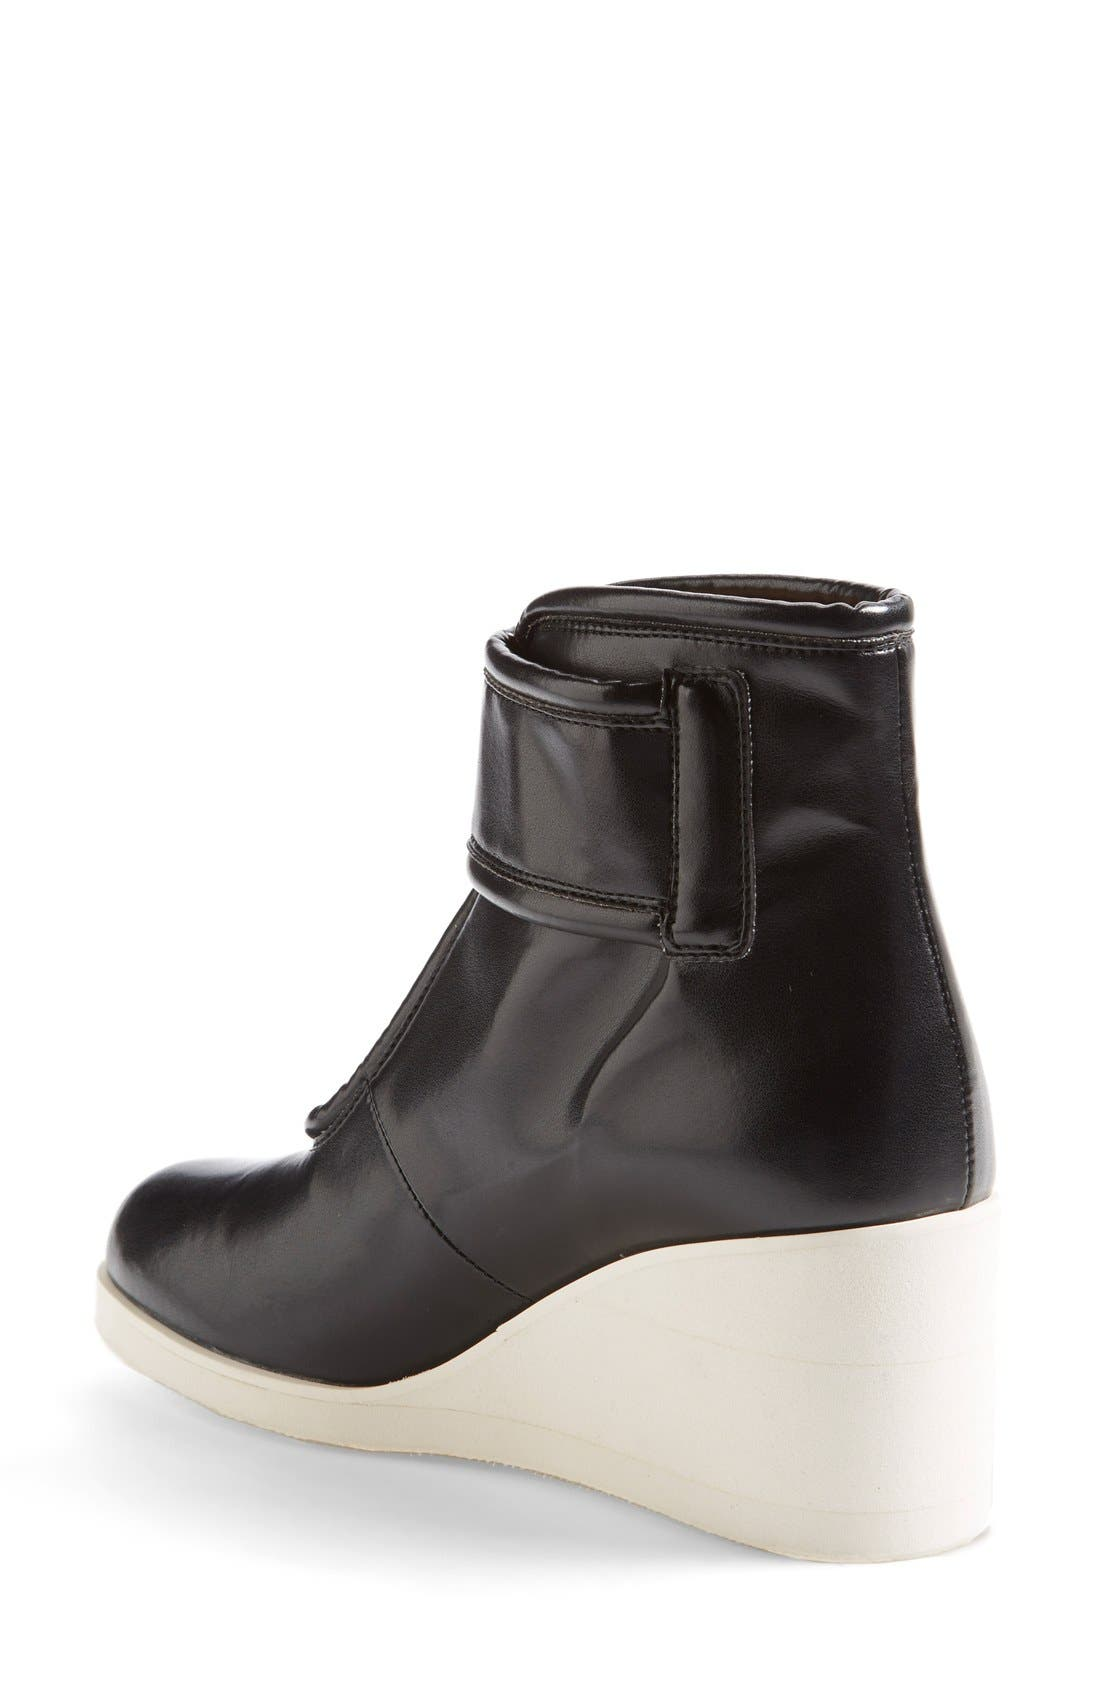 Alternate Image 2  - MM6 Maison Margiela Nappa Leather Wedge Bootie (Women)